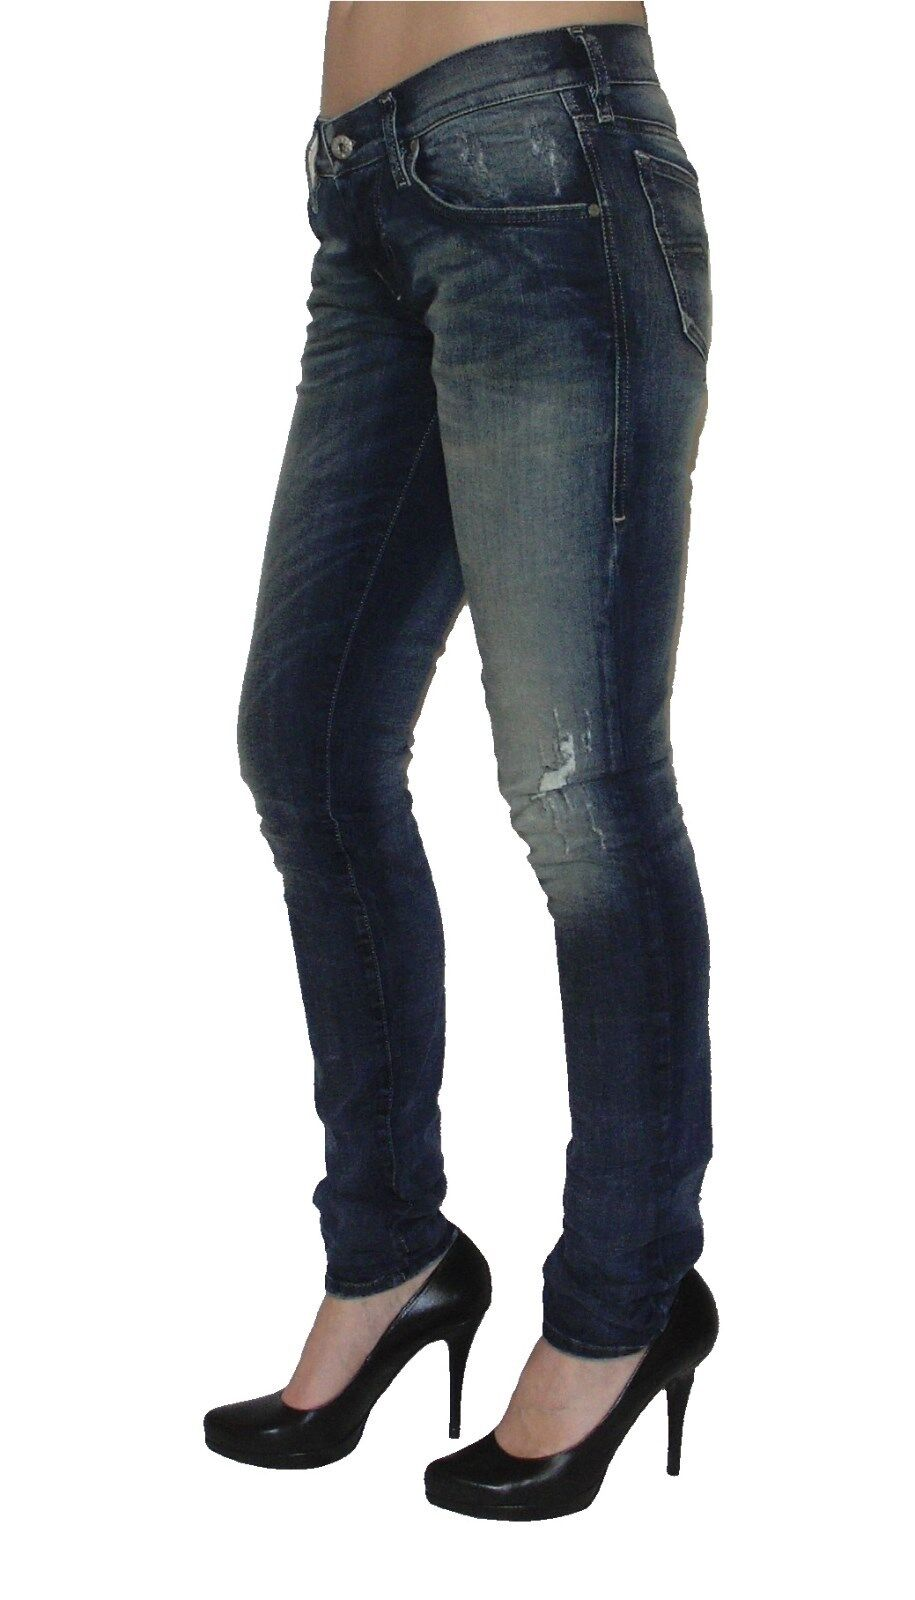 Diesel Damen Stretch Jeans GRUPEE 0838T Superslim Skinny blau  used look  NEU